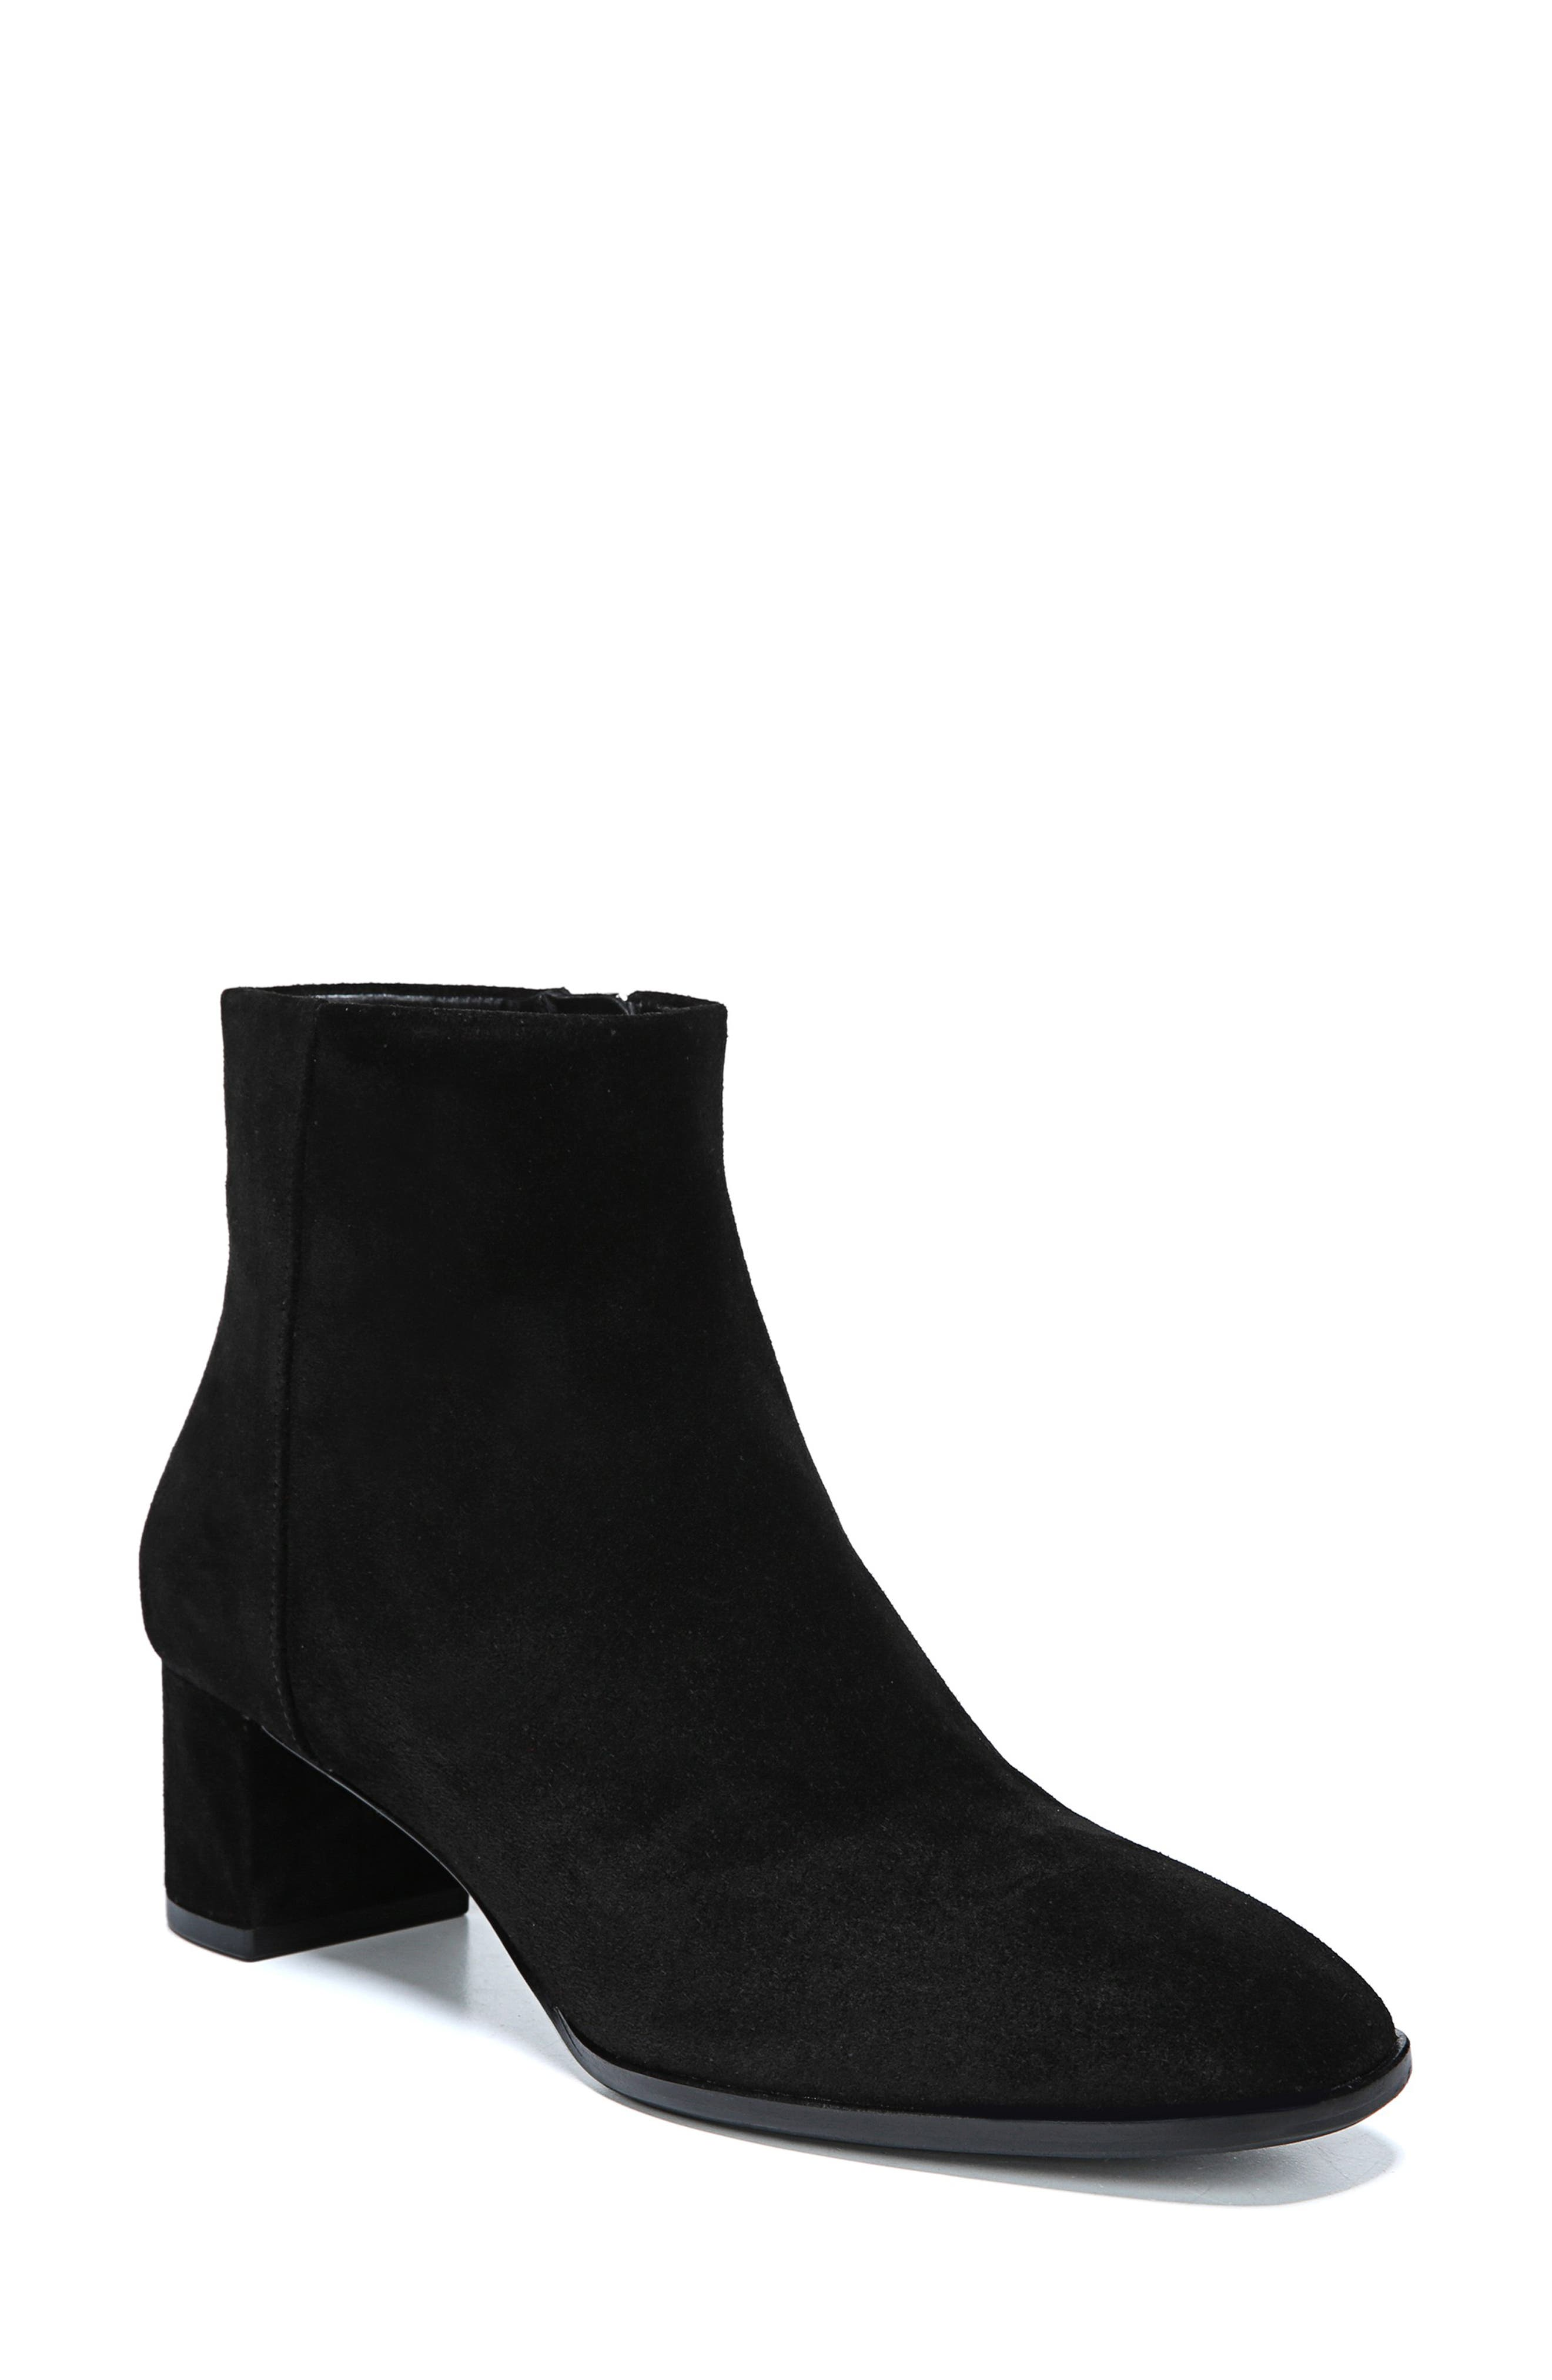 Vail Bootie,                         Main,                         color, BLACK SUEDE